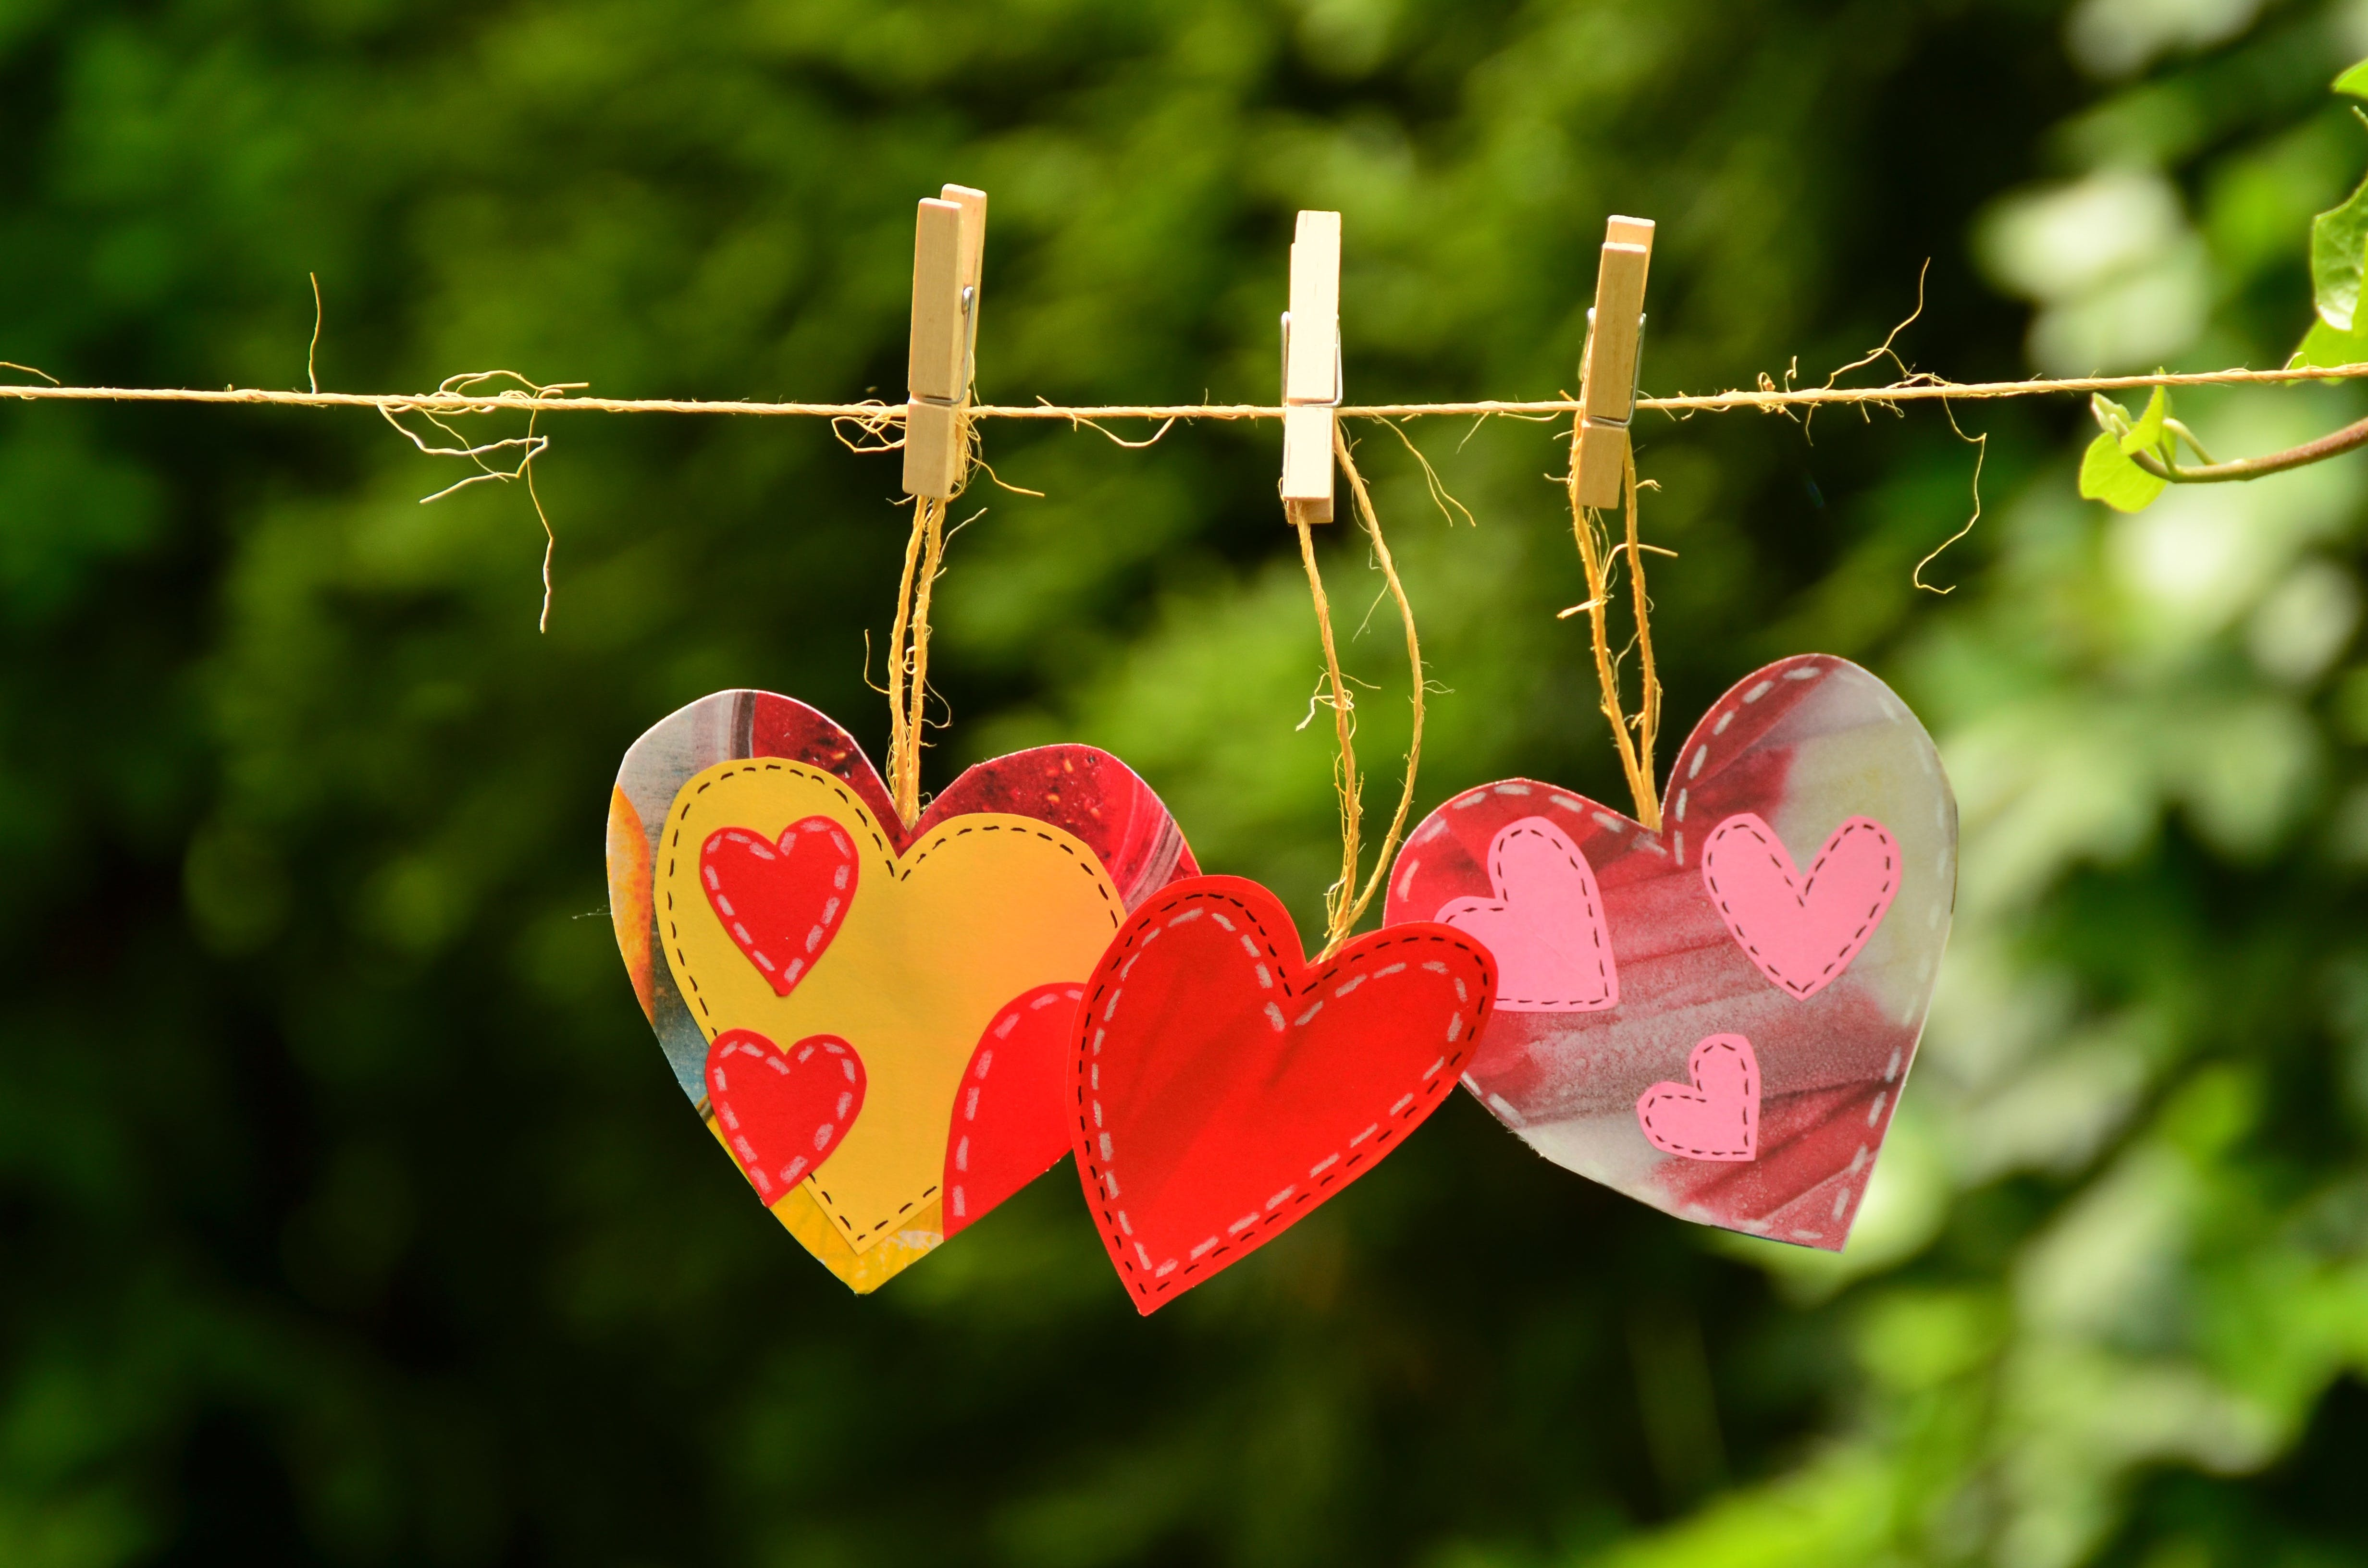 Close-up of Heart Shape Hanging on Tree